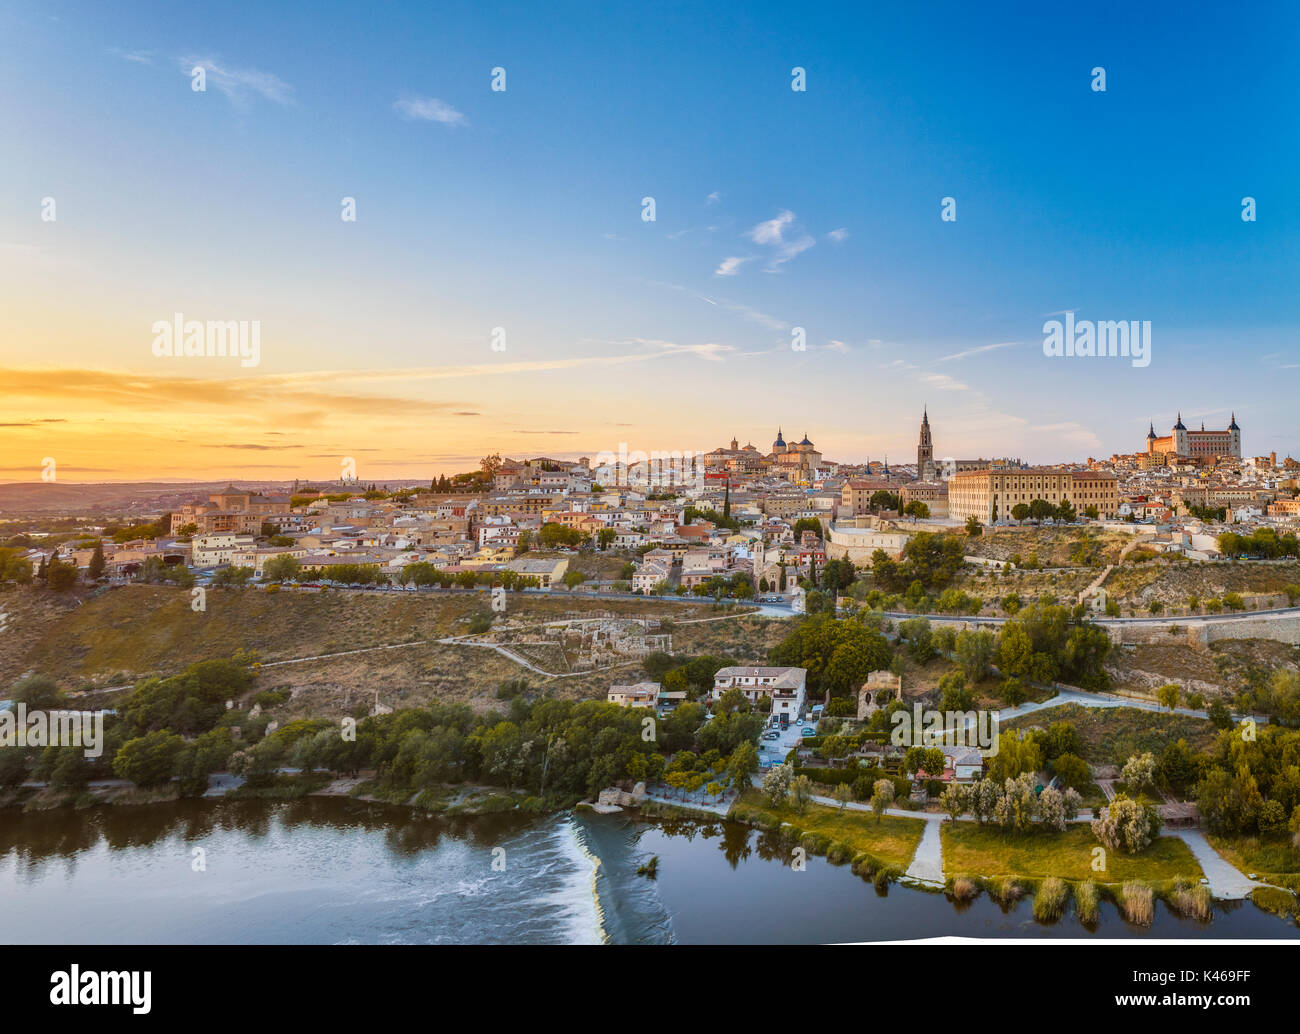 Toledo overview  at sunset. Castile-La Mancha. Spain - Stock Image